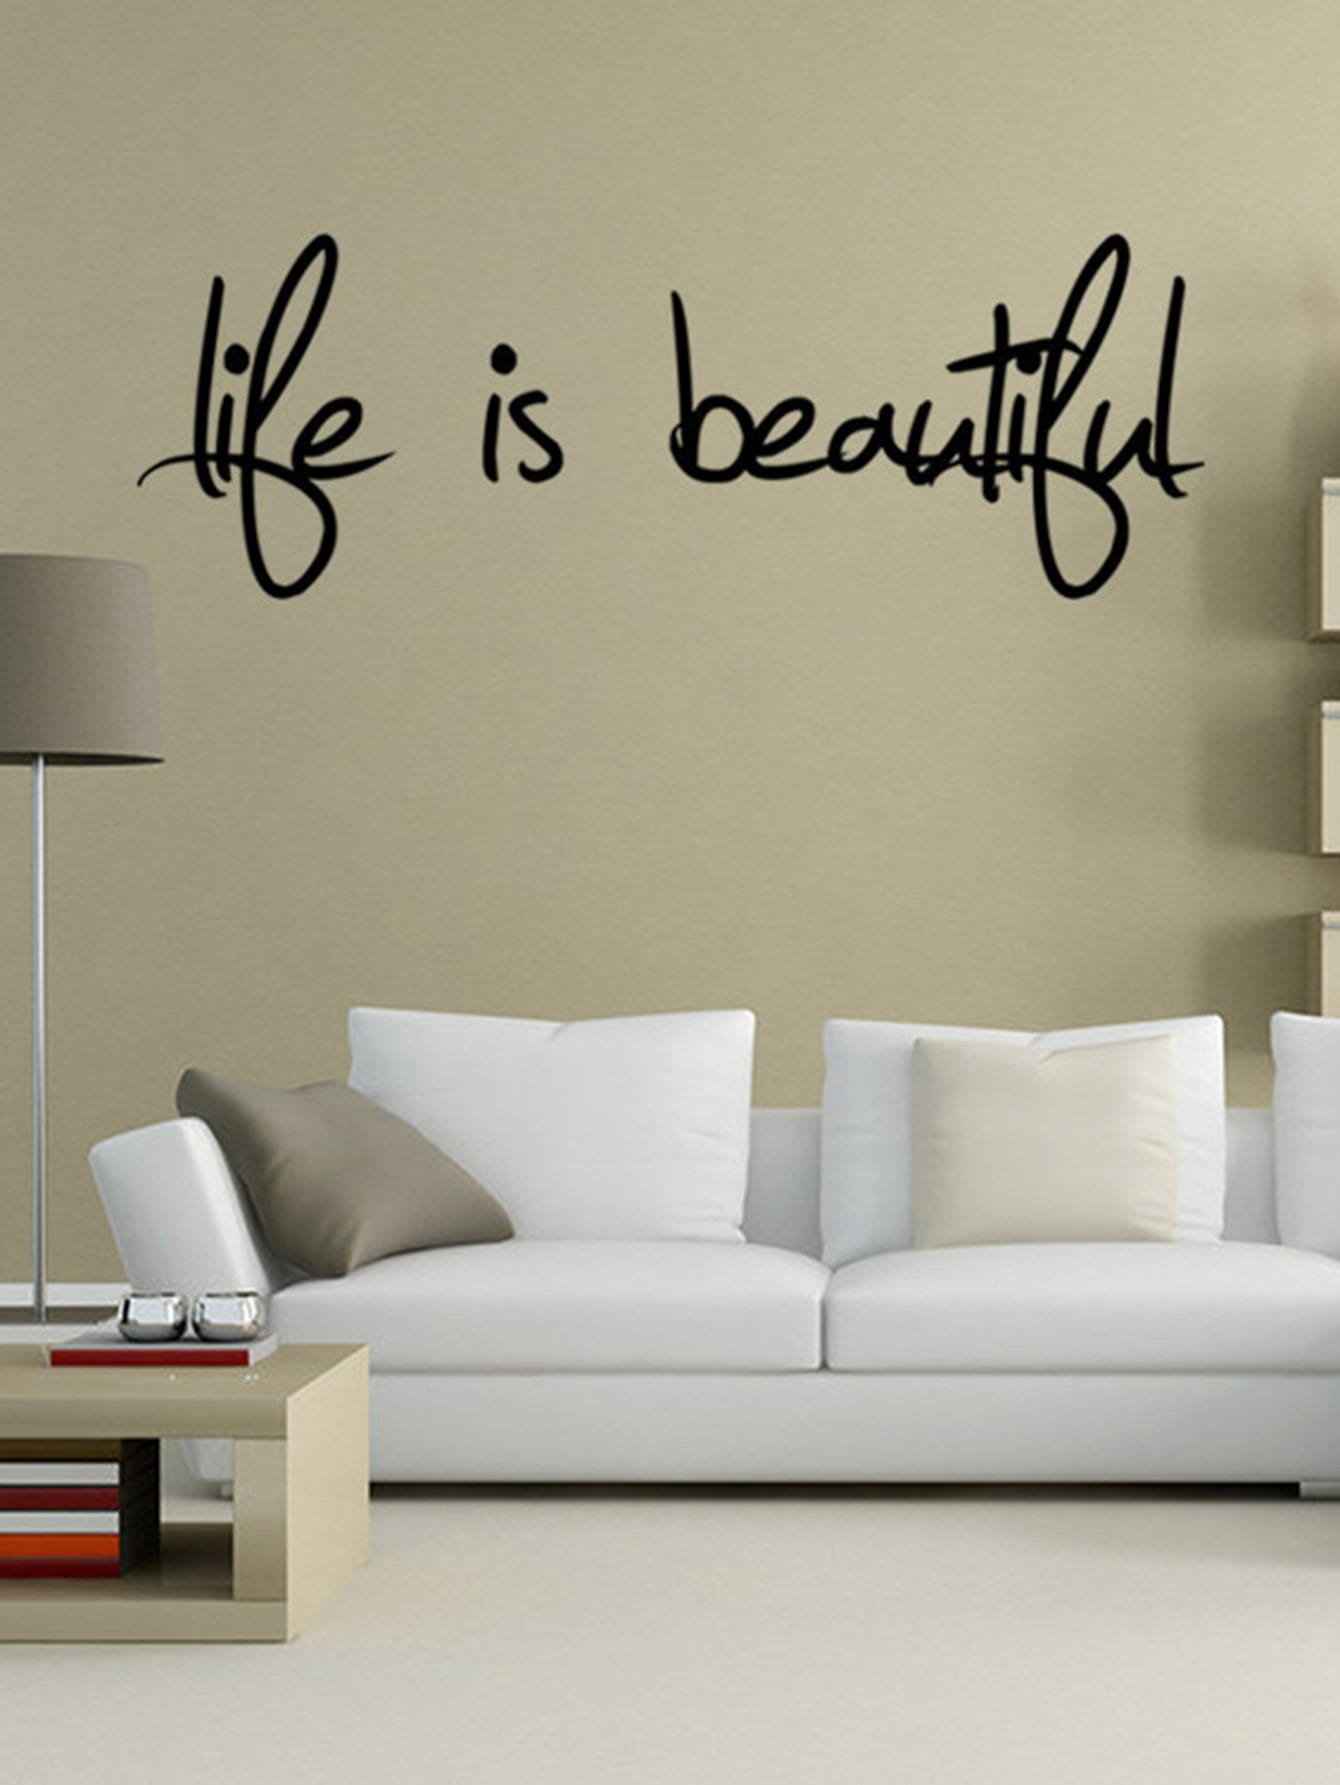 Adhesivo Decorativo Para Paredes Adhesivo Decorativo De Pared Con Frase Spanish Shein